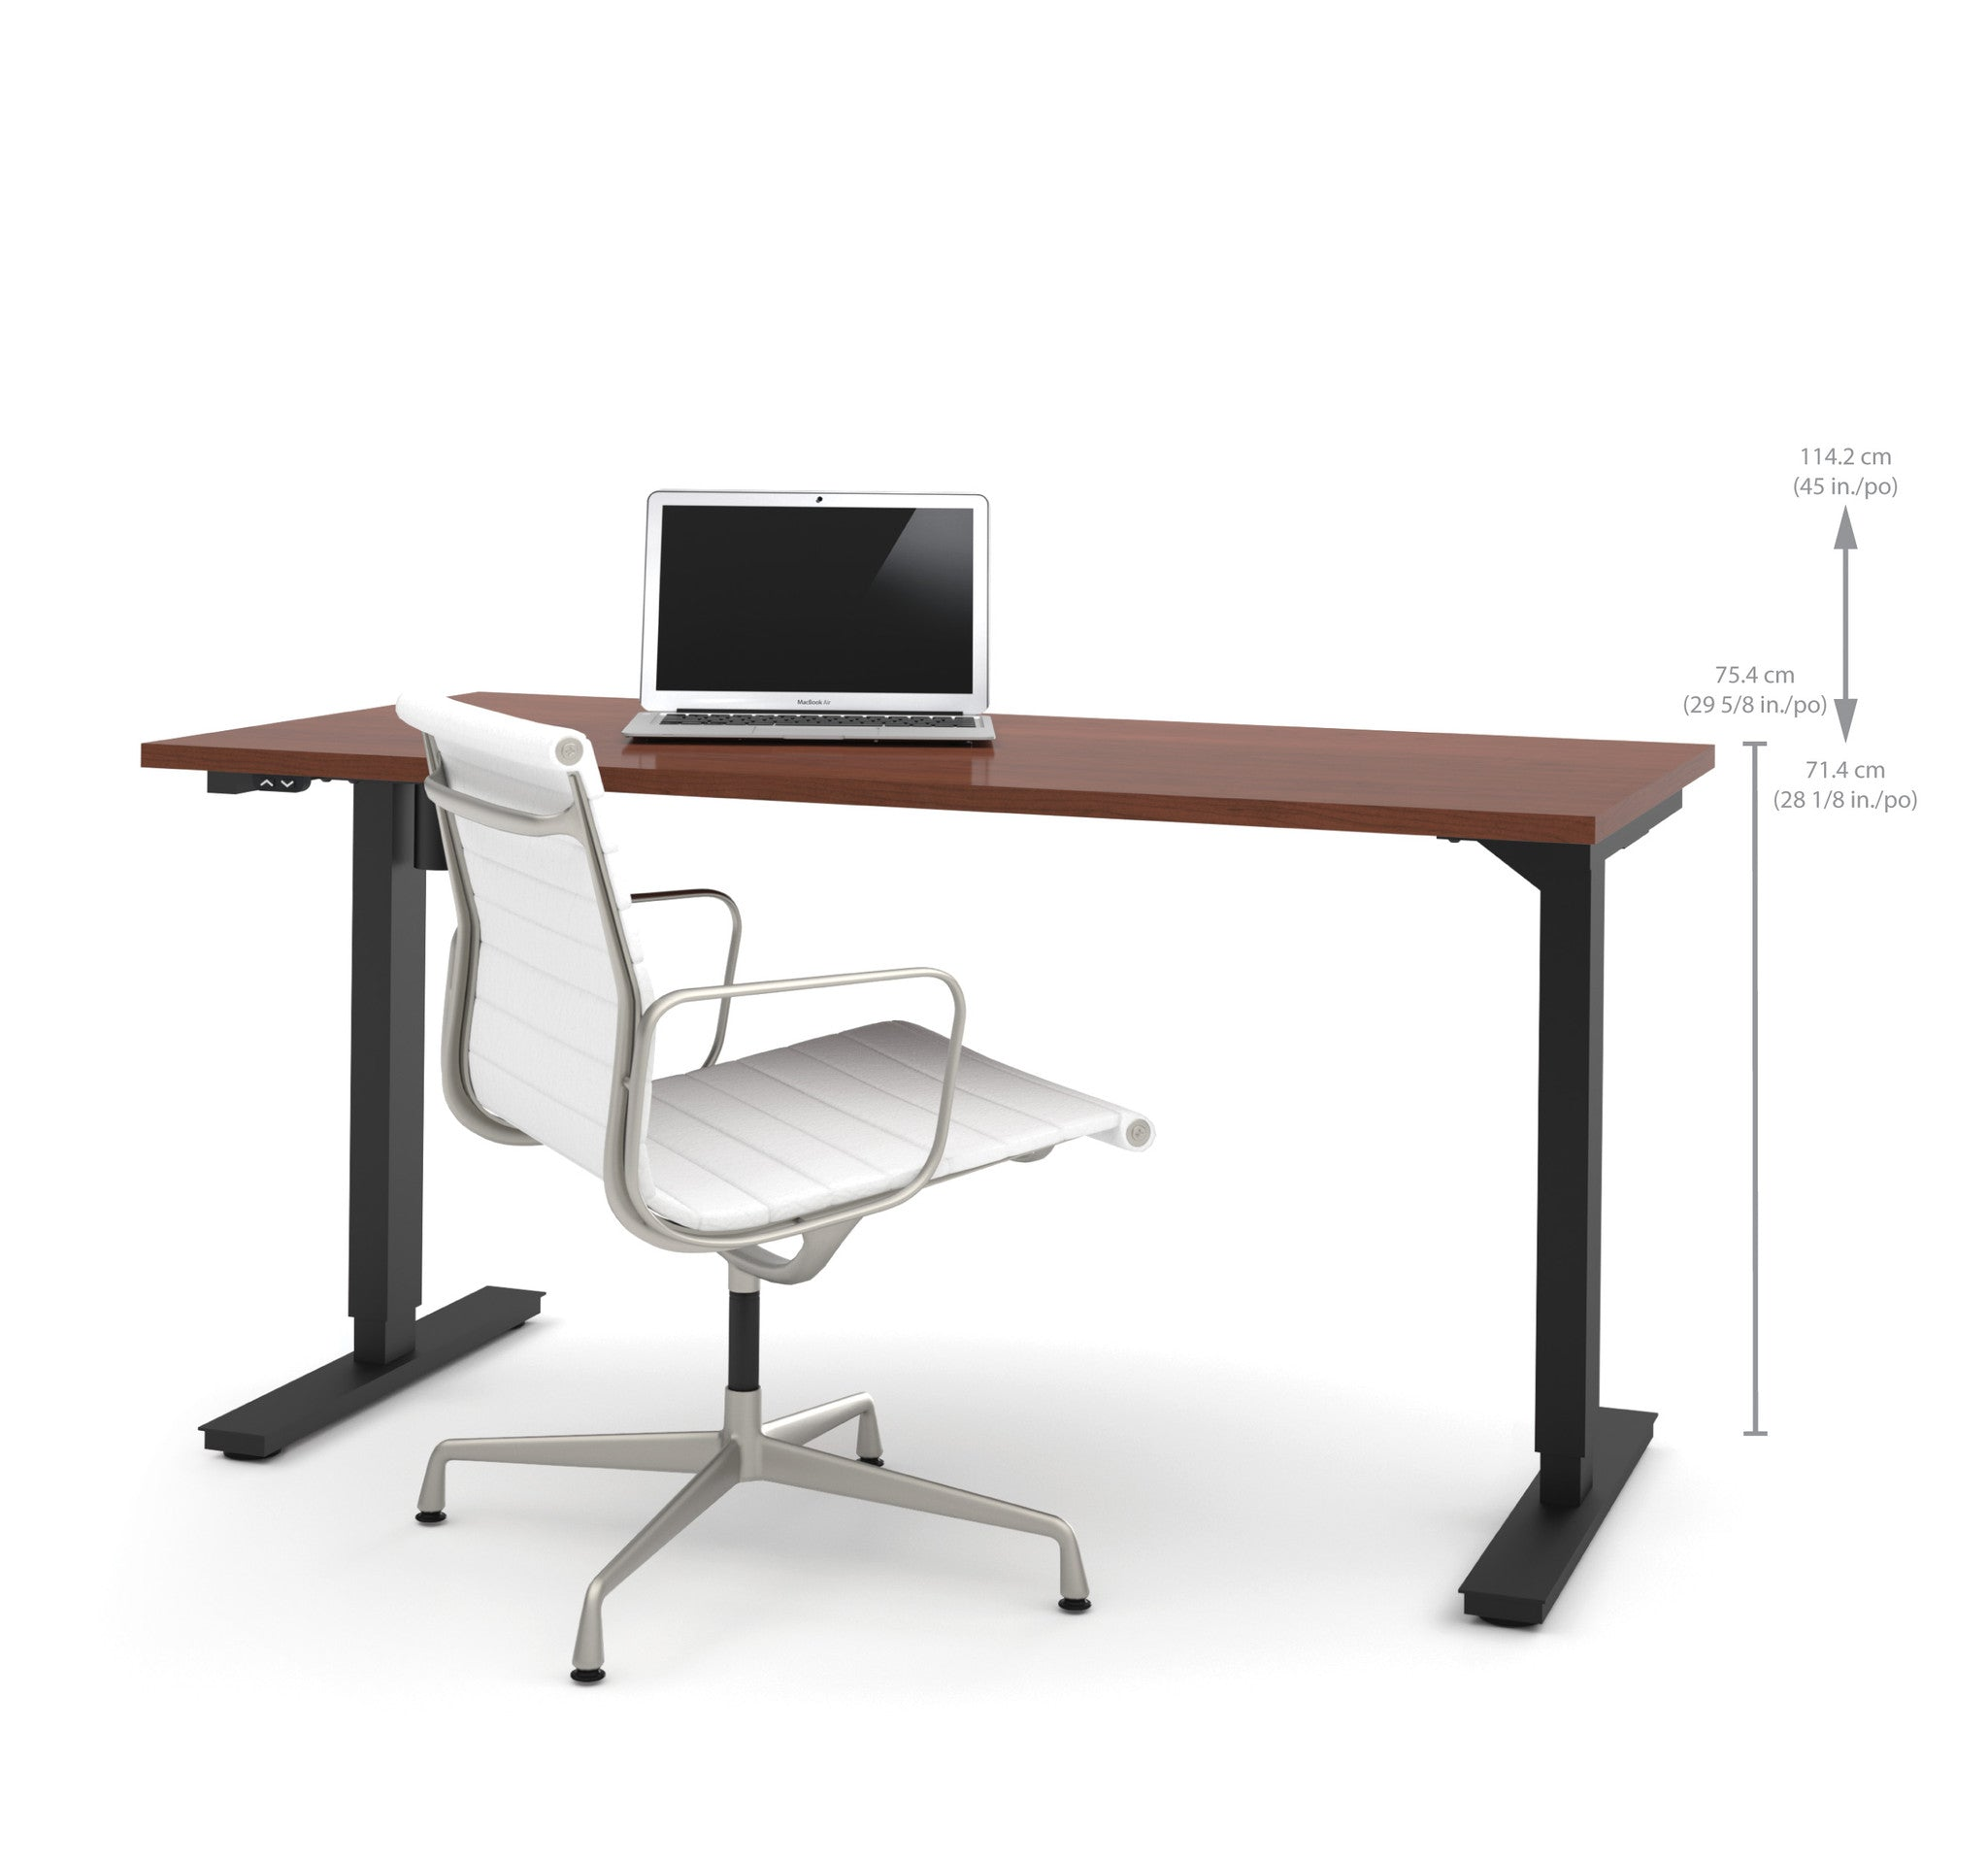 "60"" Sit-Stand Electric Height Adjustable Office Desk in Bordeaux (28"" - 45"" H)"